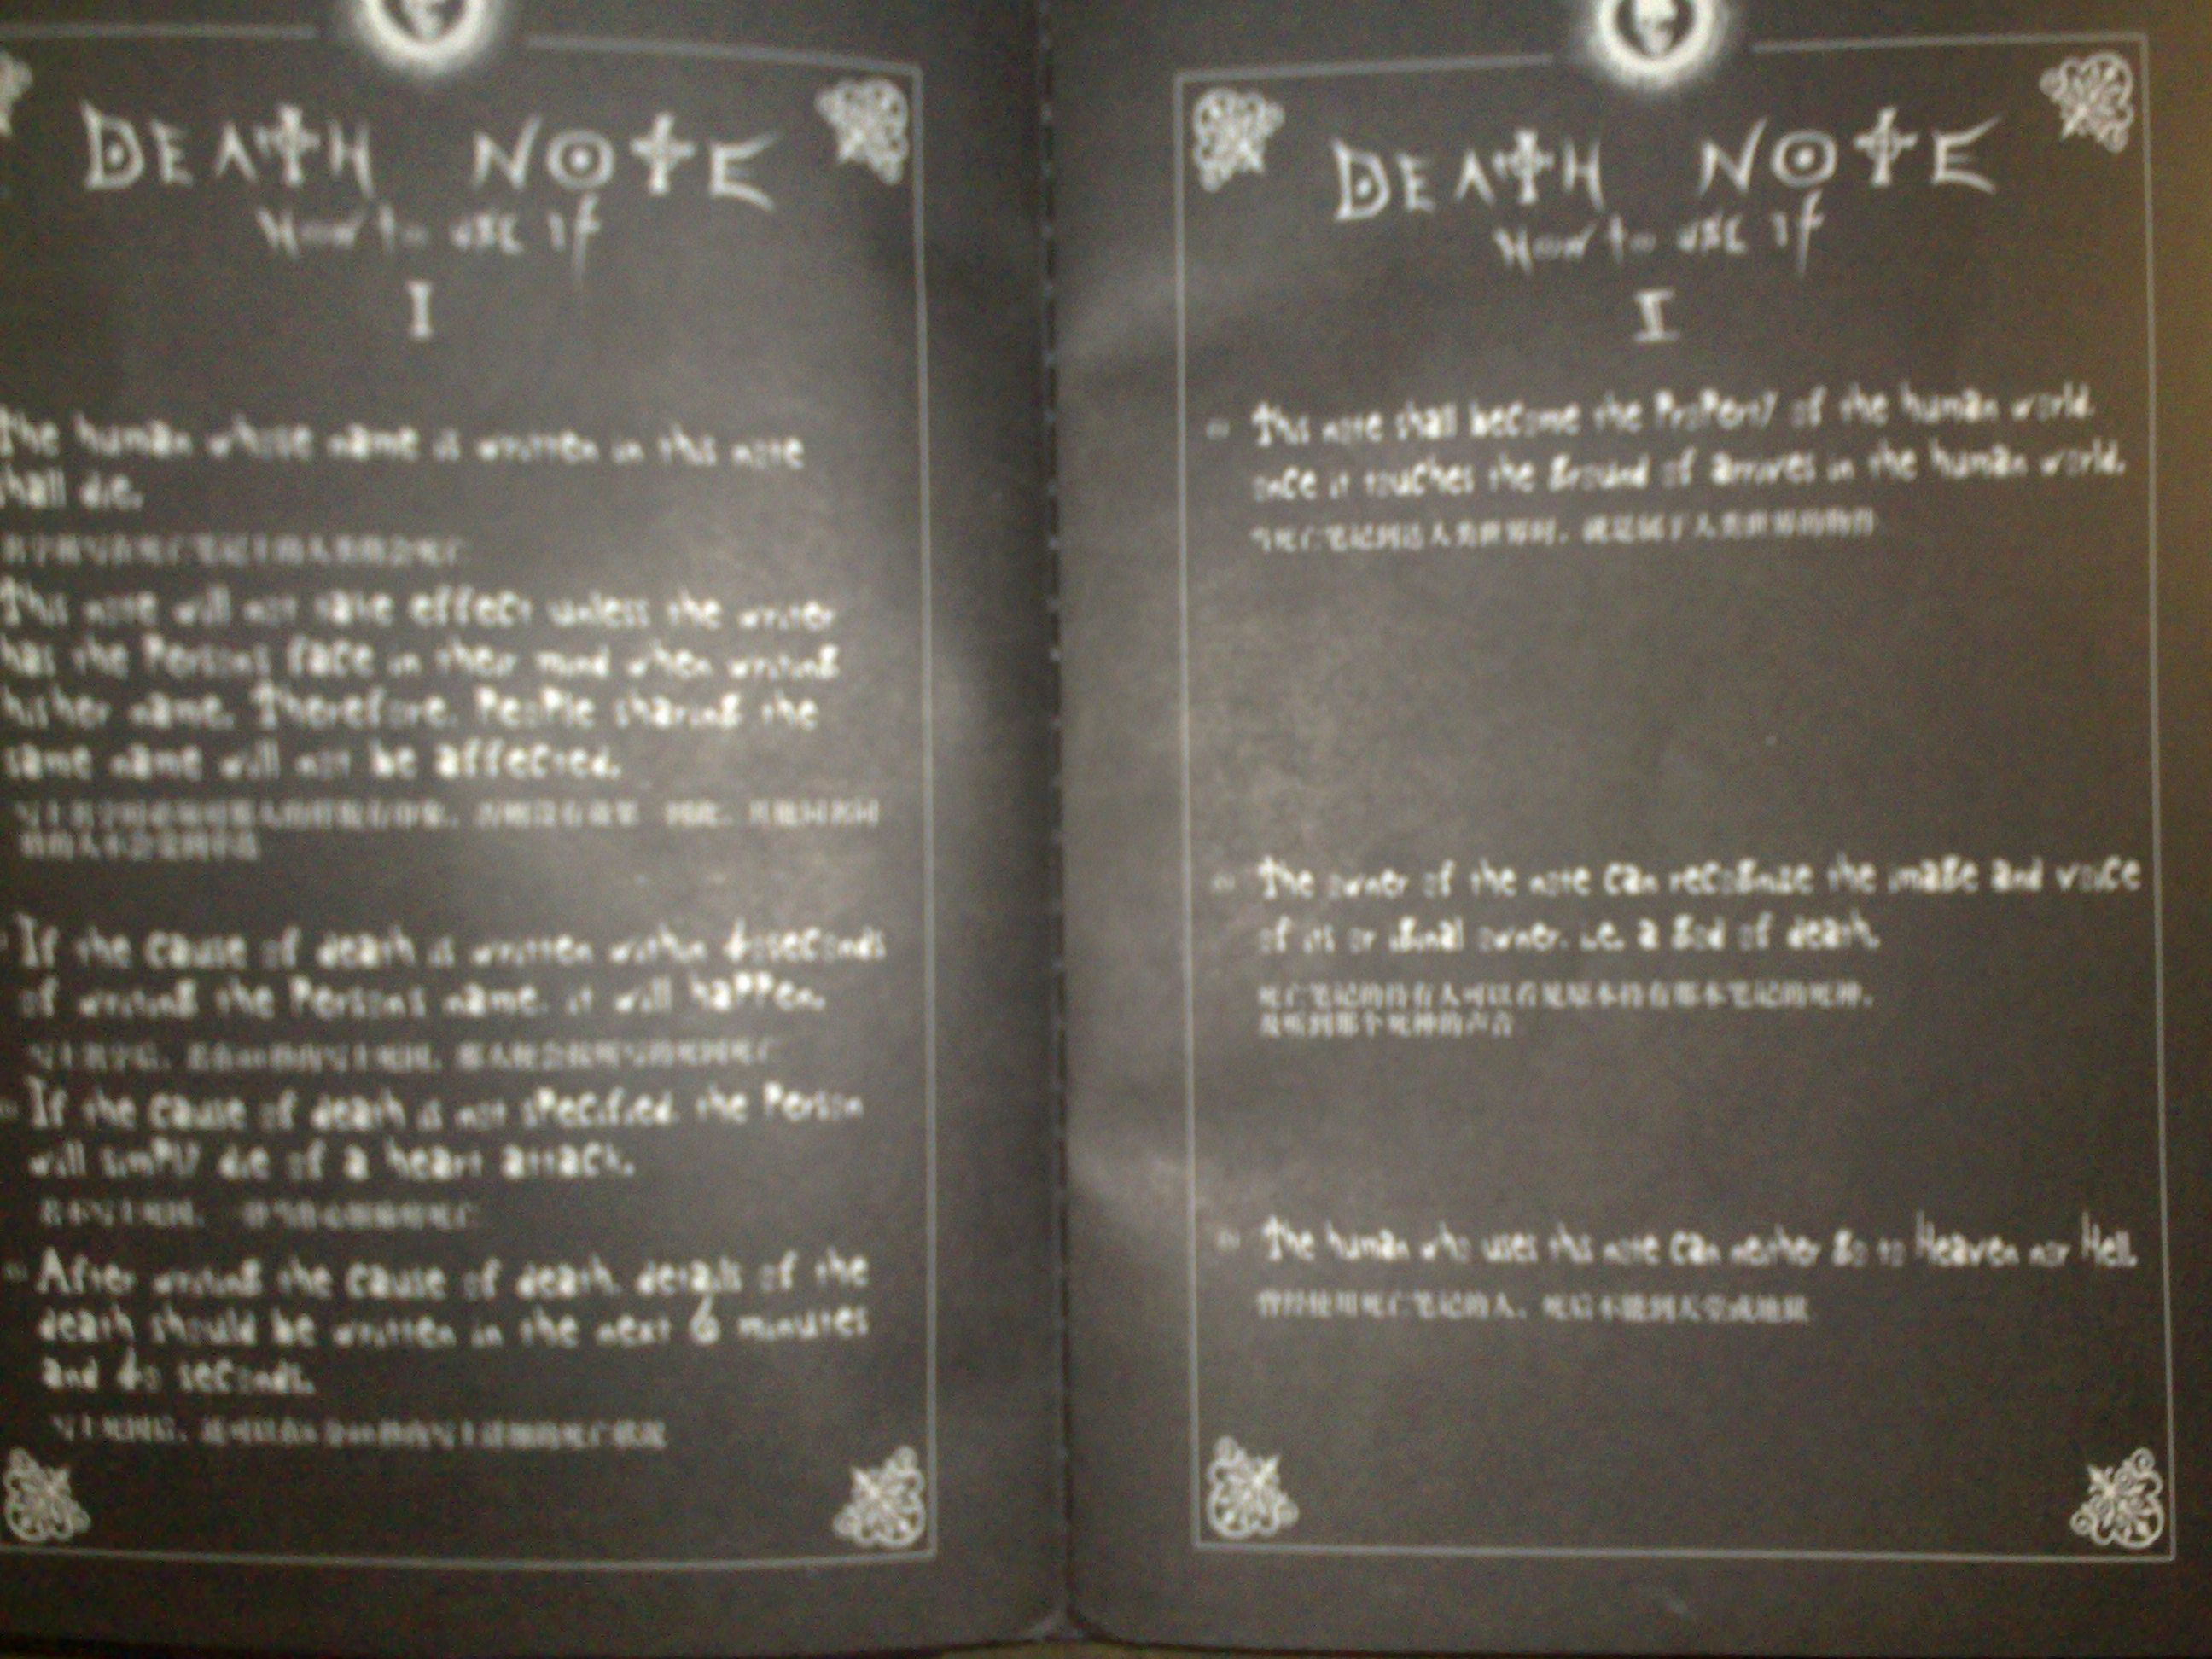 Death Note How To Use It Pages | www.pixshark.com - Images ...